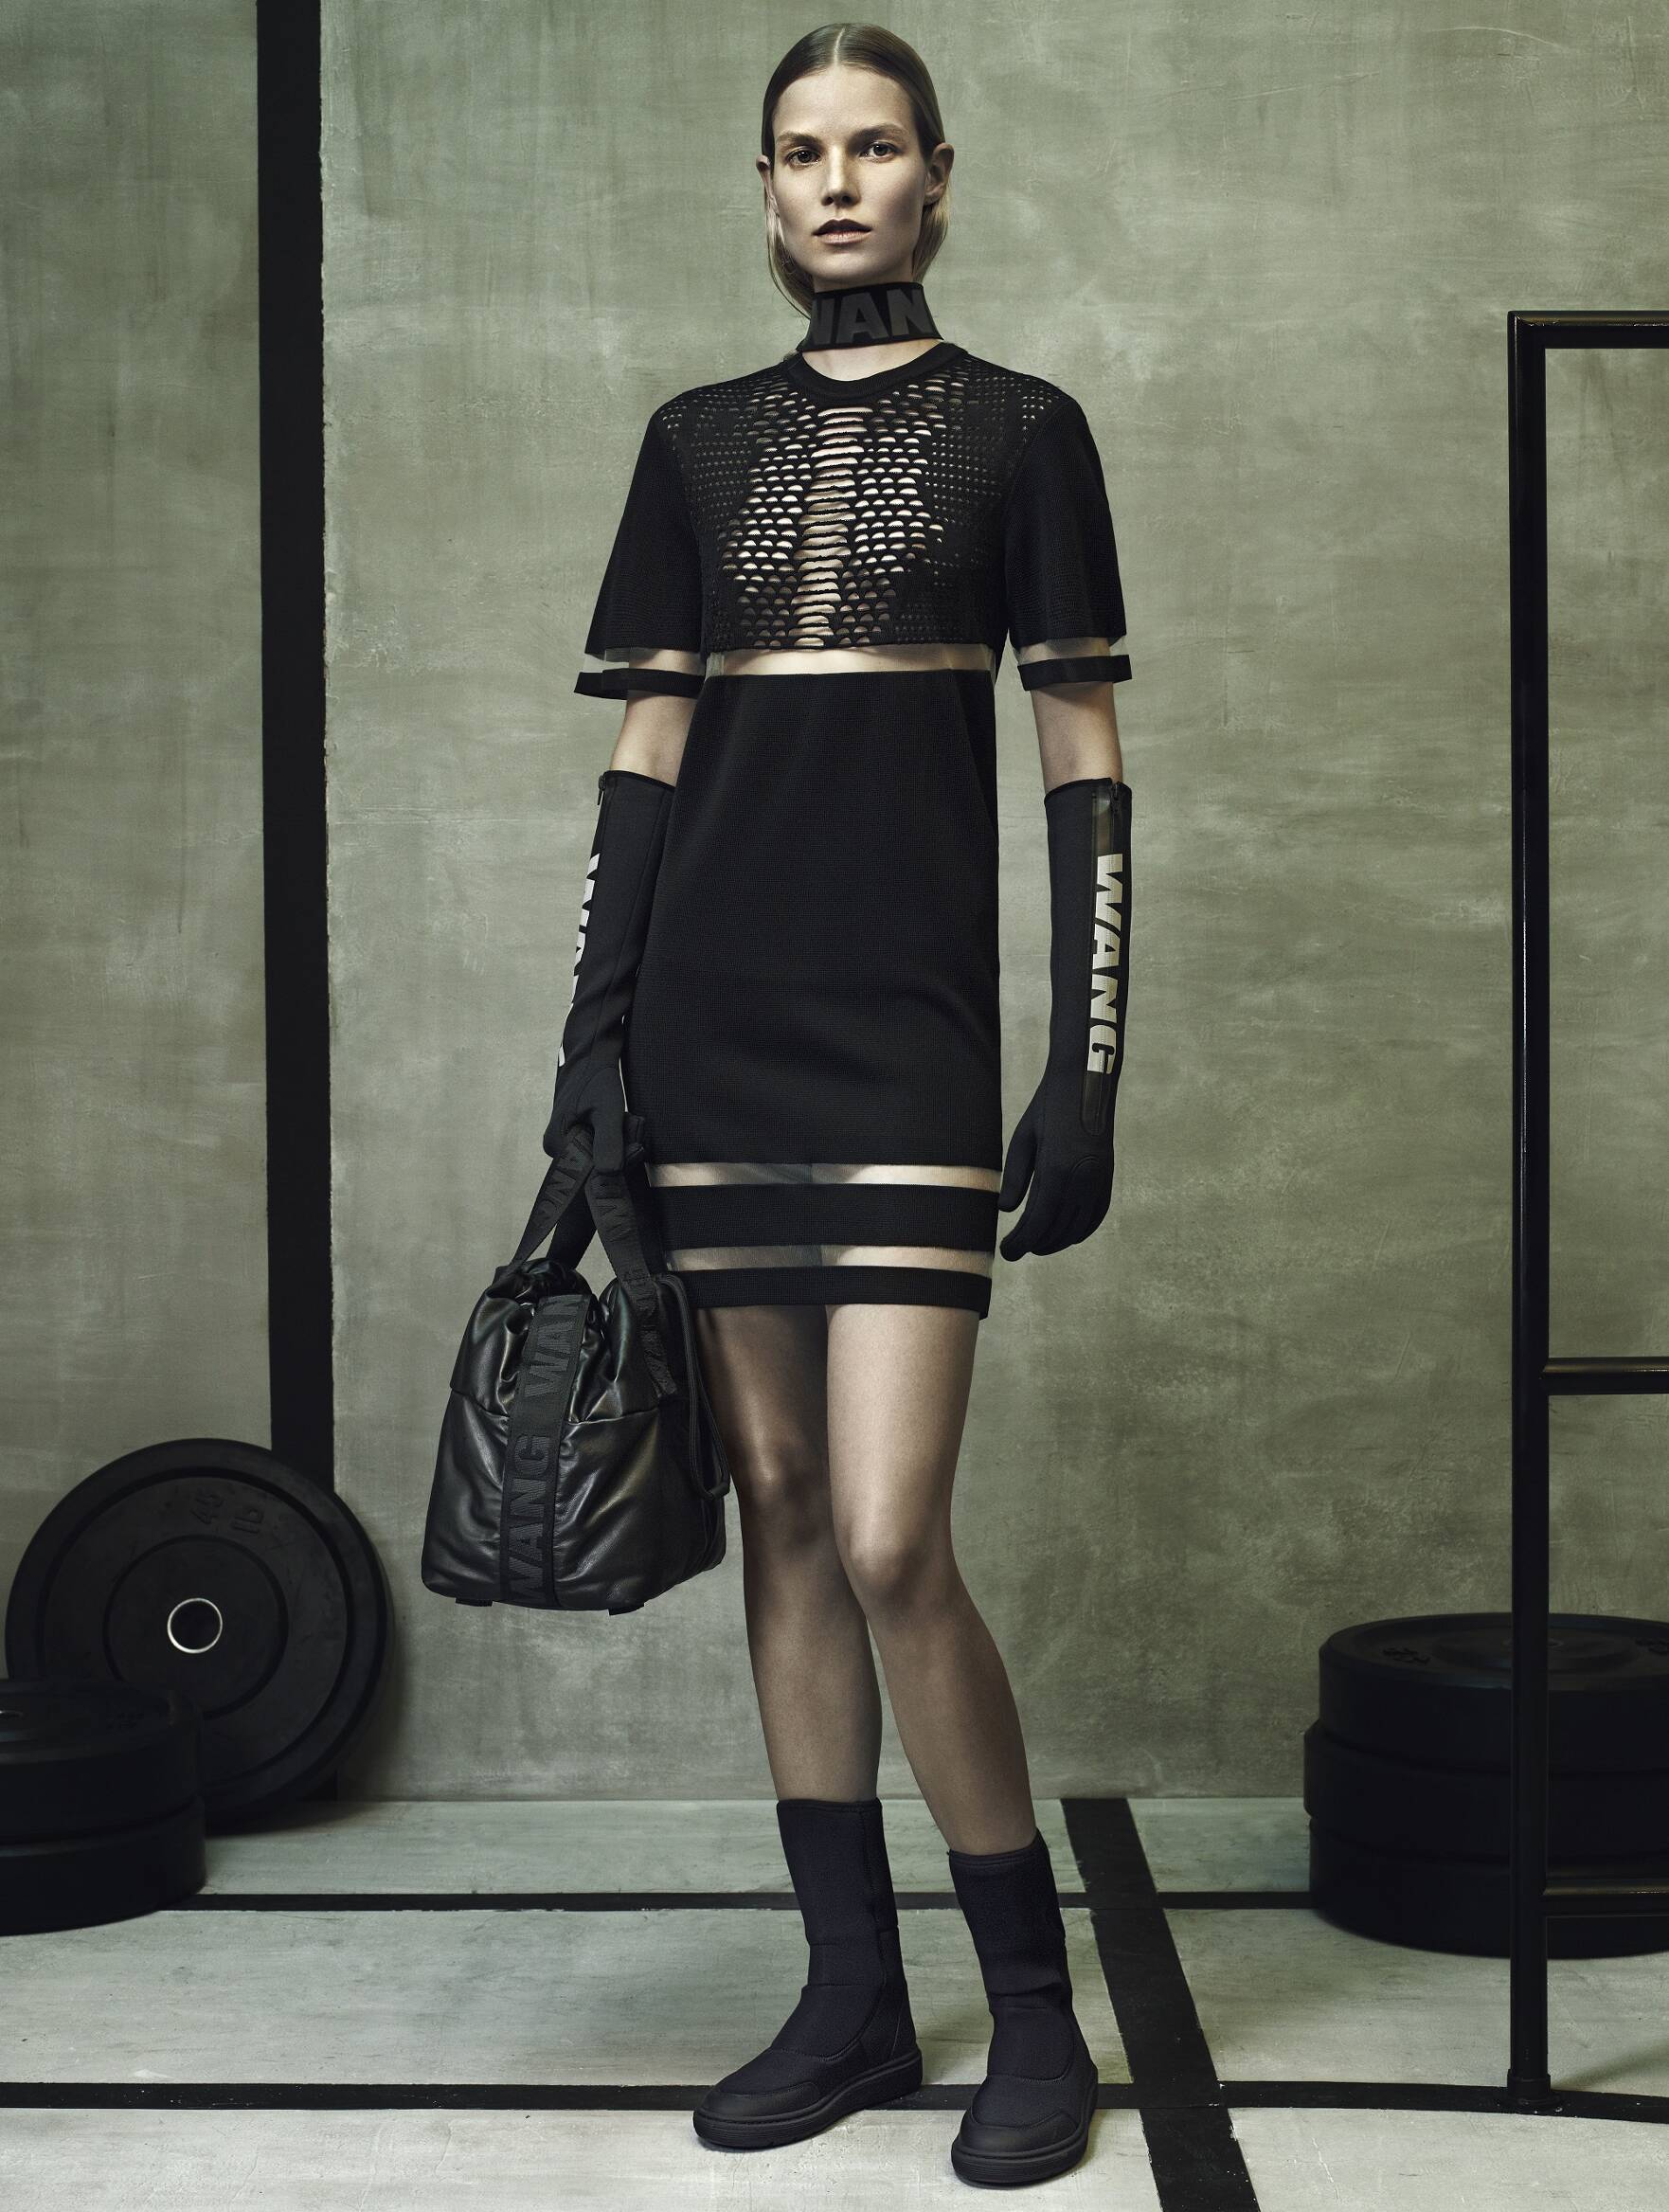 Model Alexander Wang for H&M